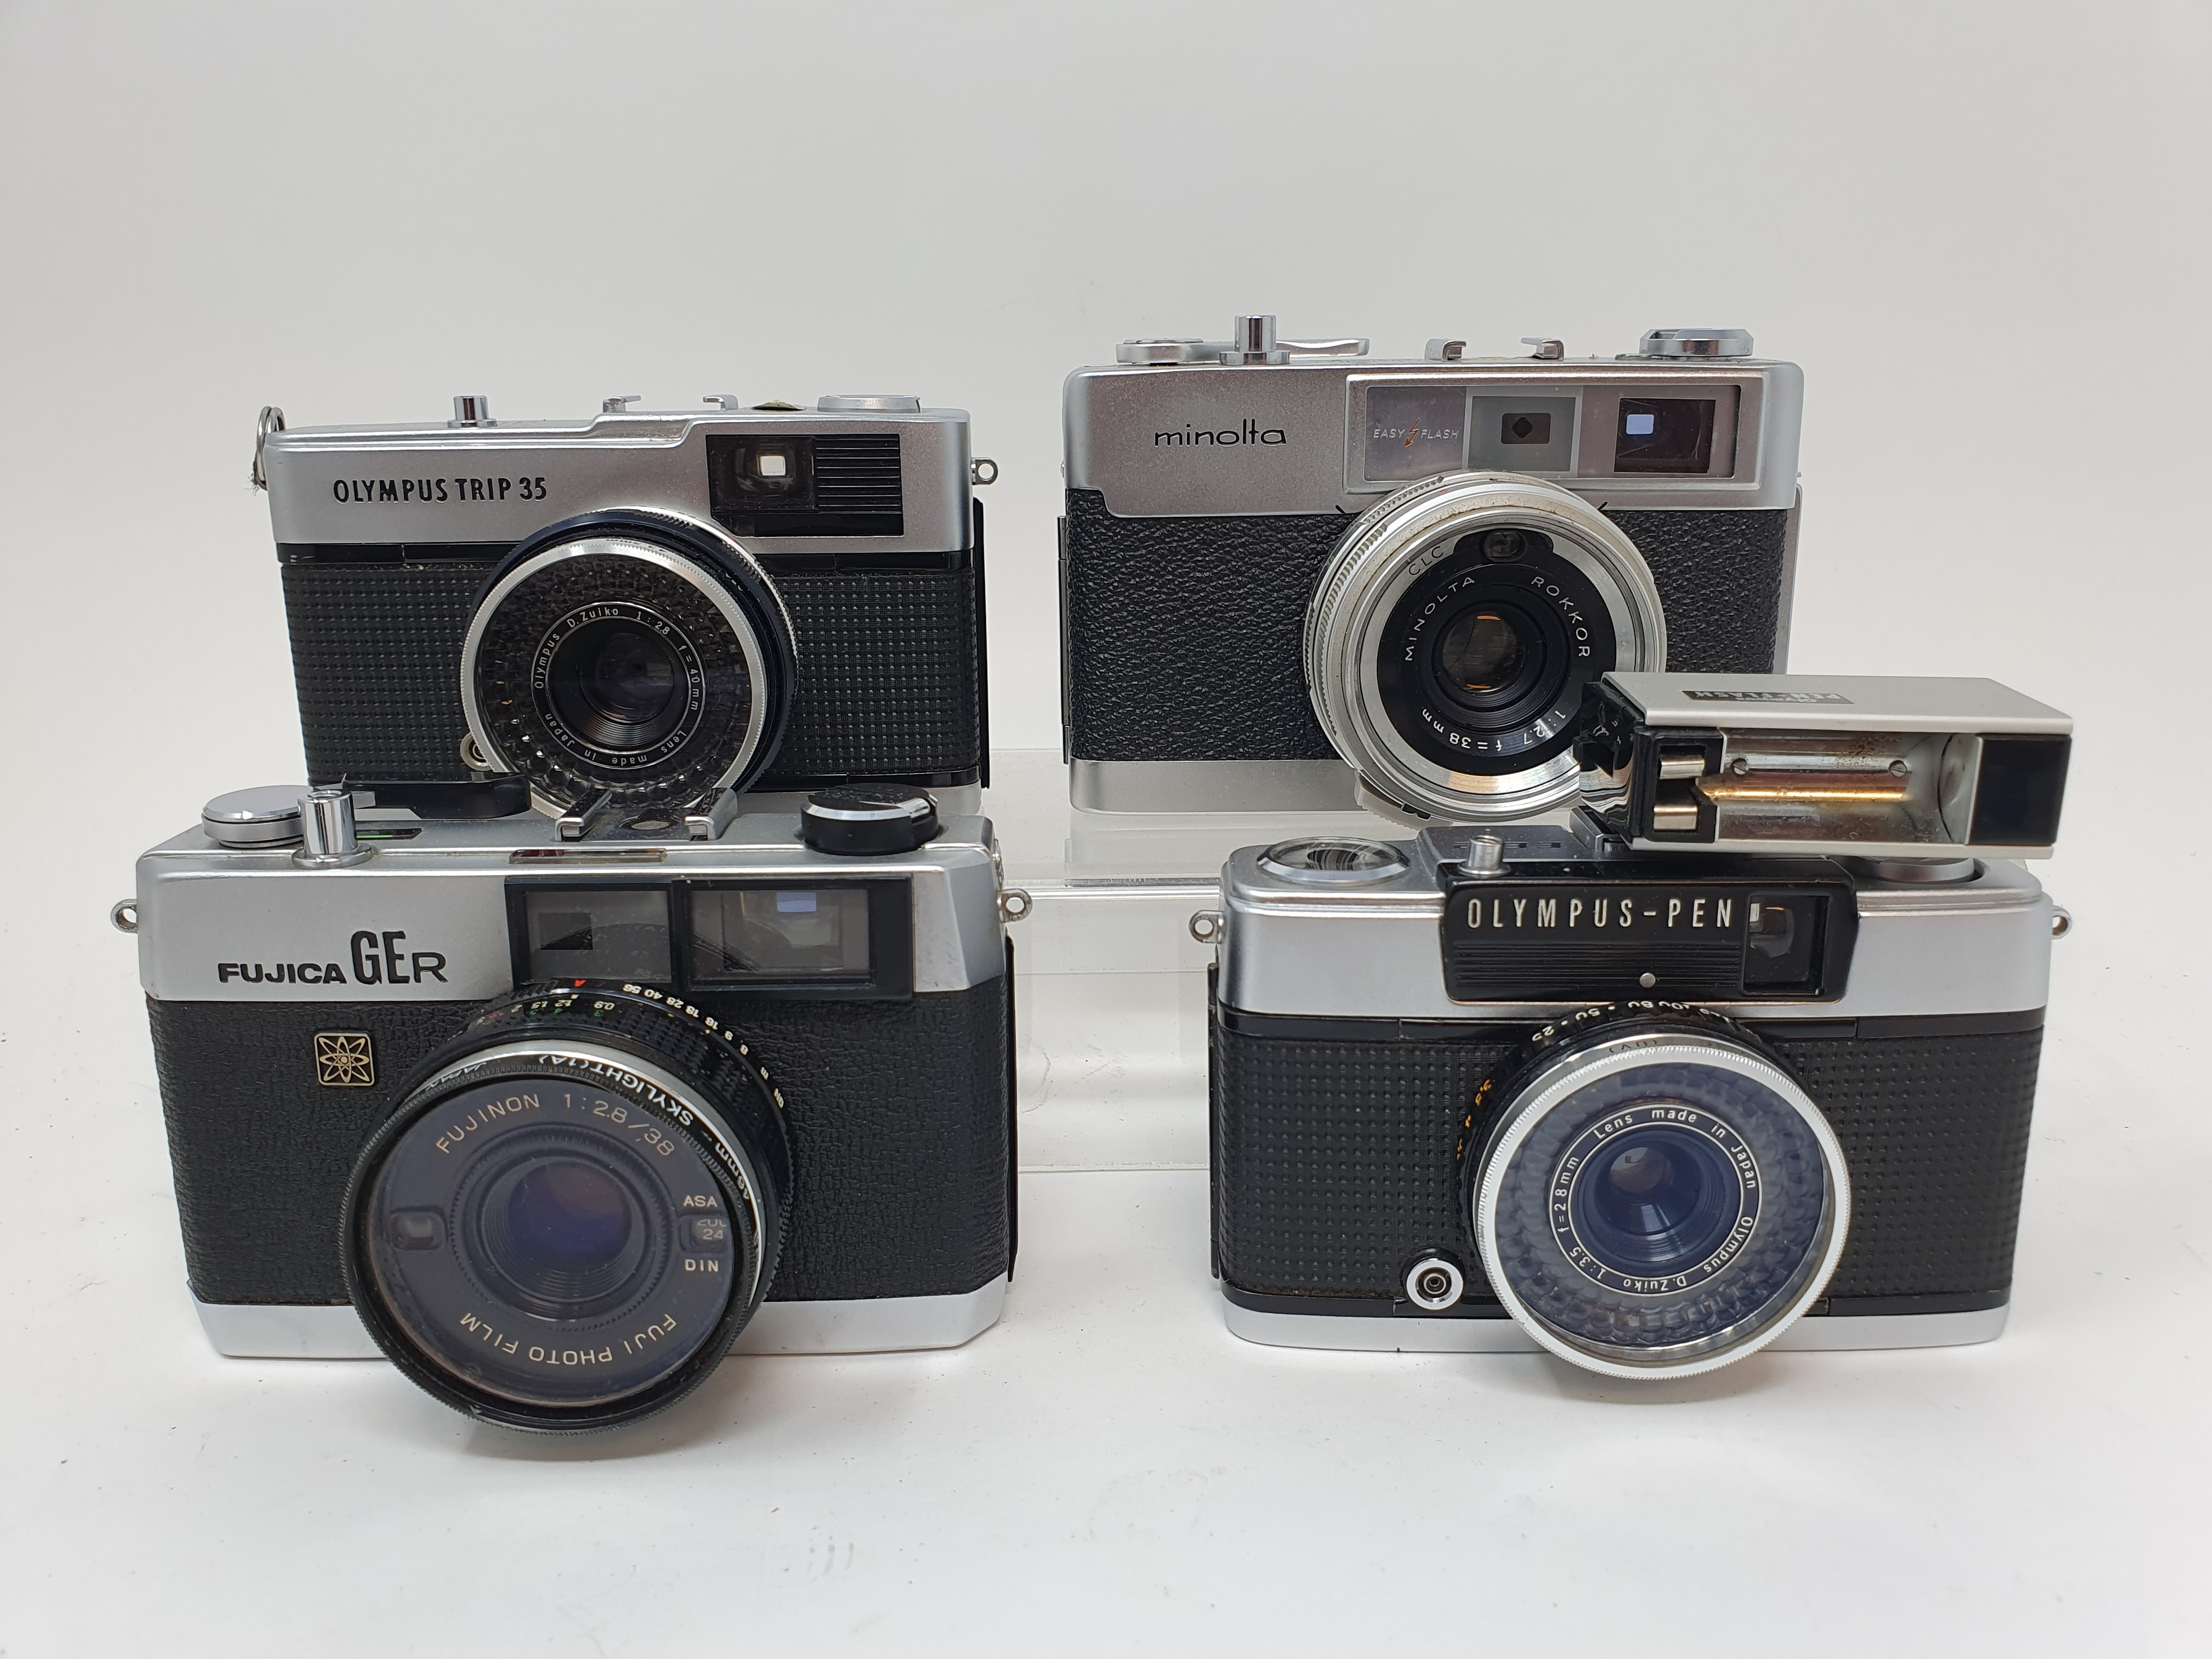 An Olympus Trip 35 camera, an Olympus - PEN camera a Fujica GER camera and a Minolta AL - F